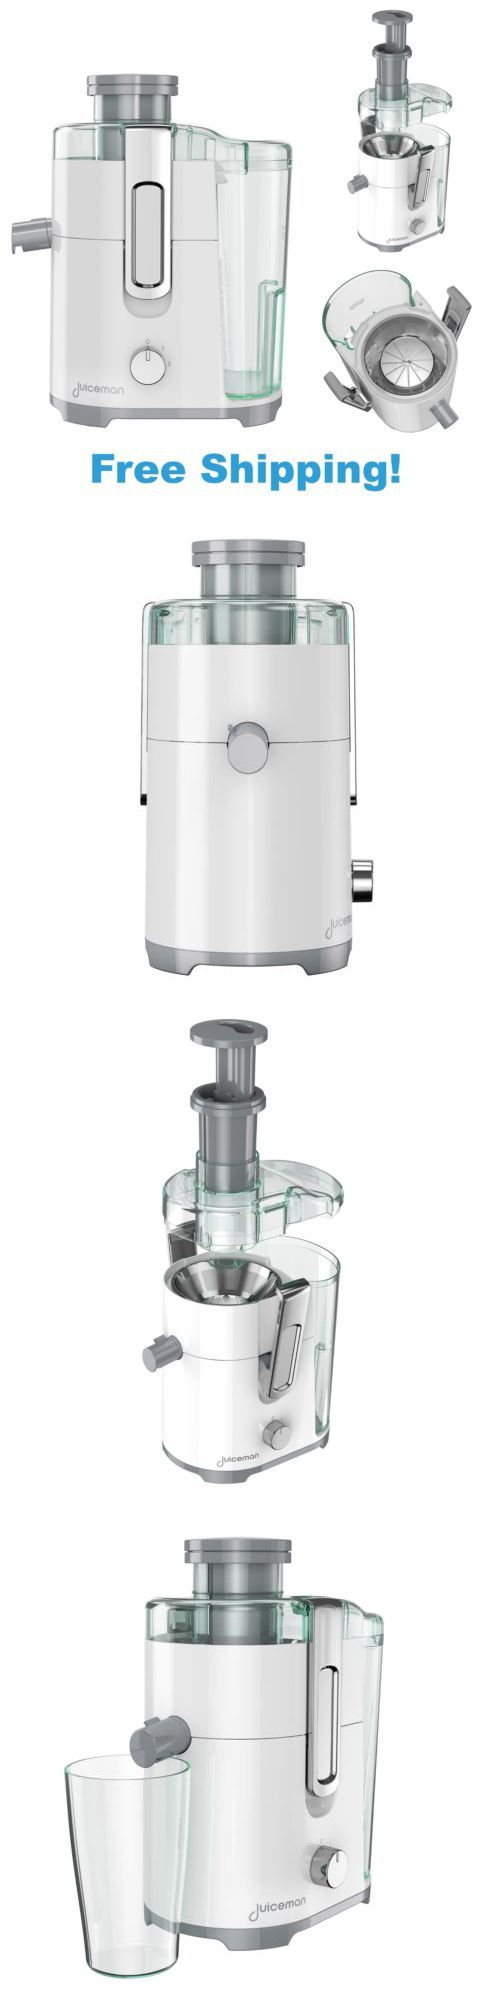 appliances: Electric Juice Extractor Machine Fruit Vegetable Juicer Fresh Maker Big Mouth BUY IT NOW ONLY: $53.35